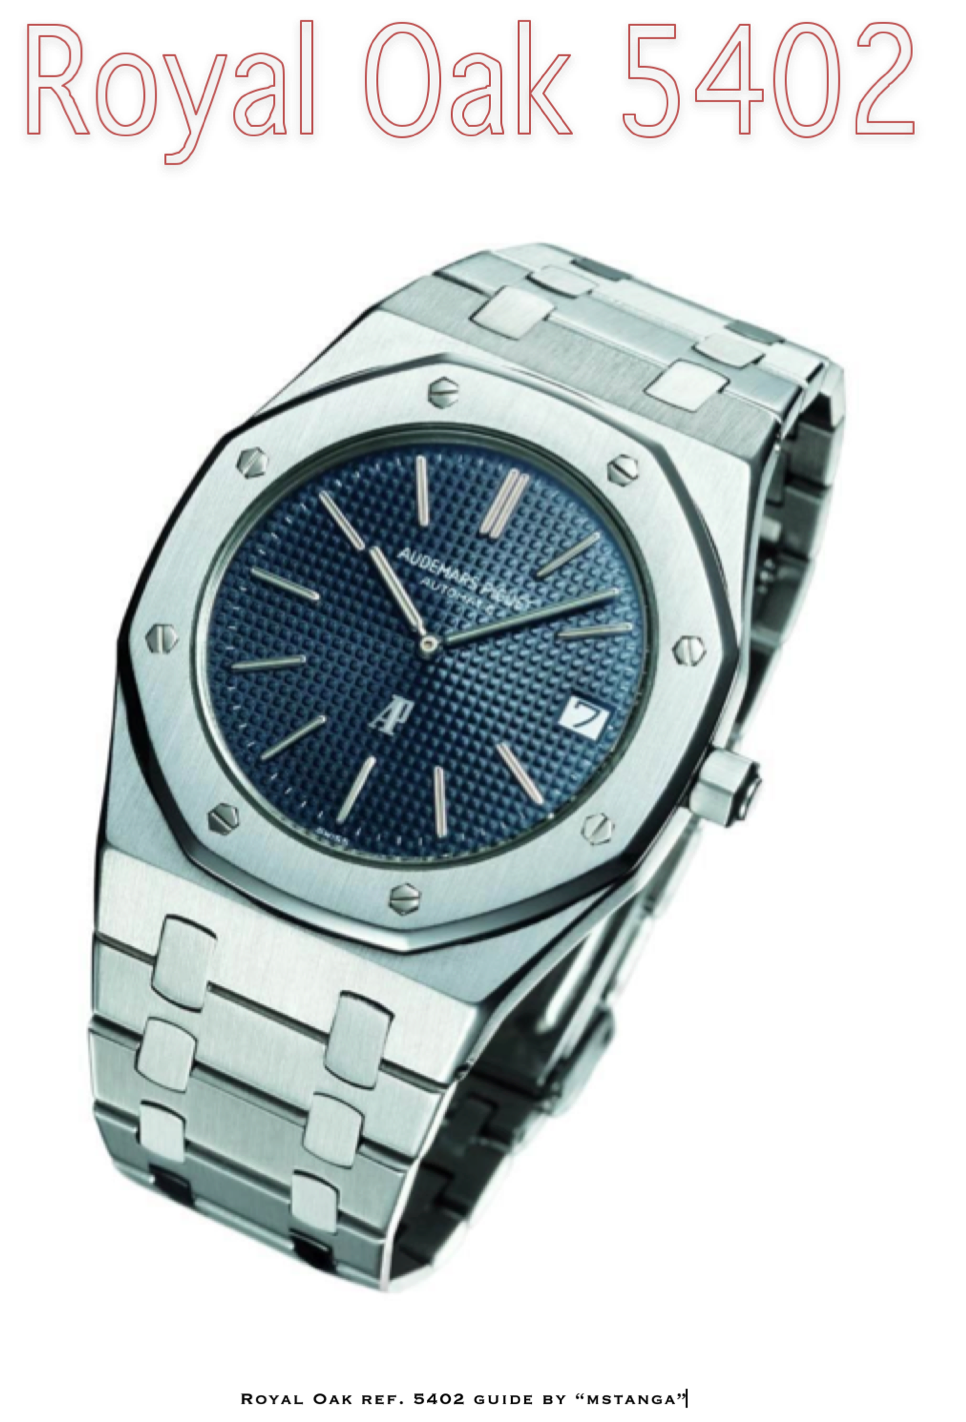 READY: Royal Oak ref. 5402 guide (the English version is online) 2dceexe